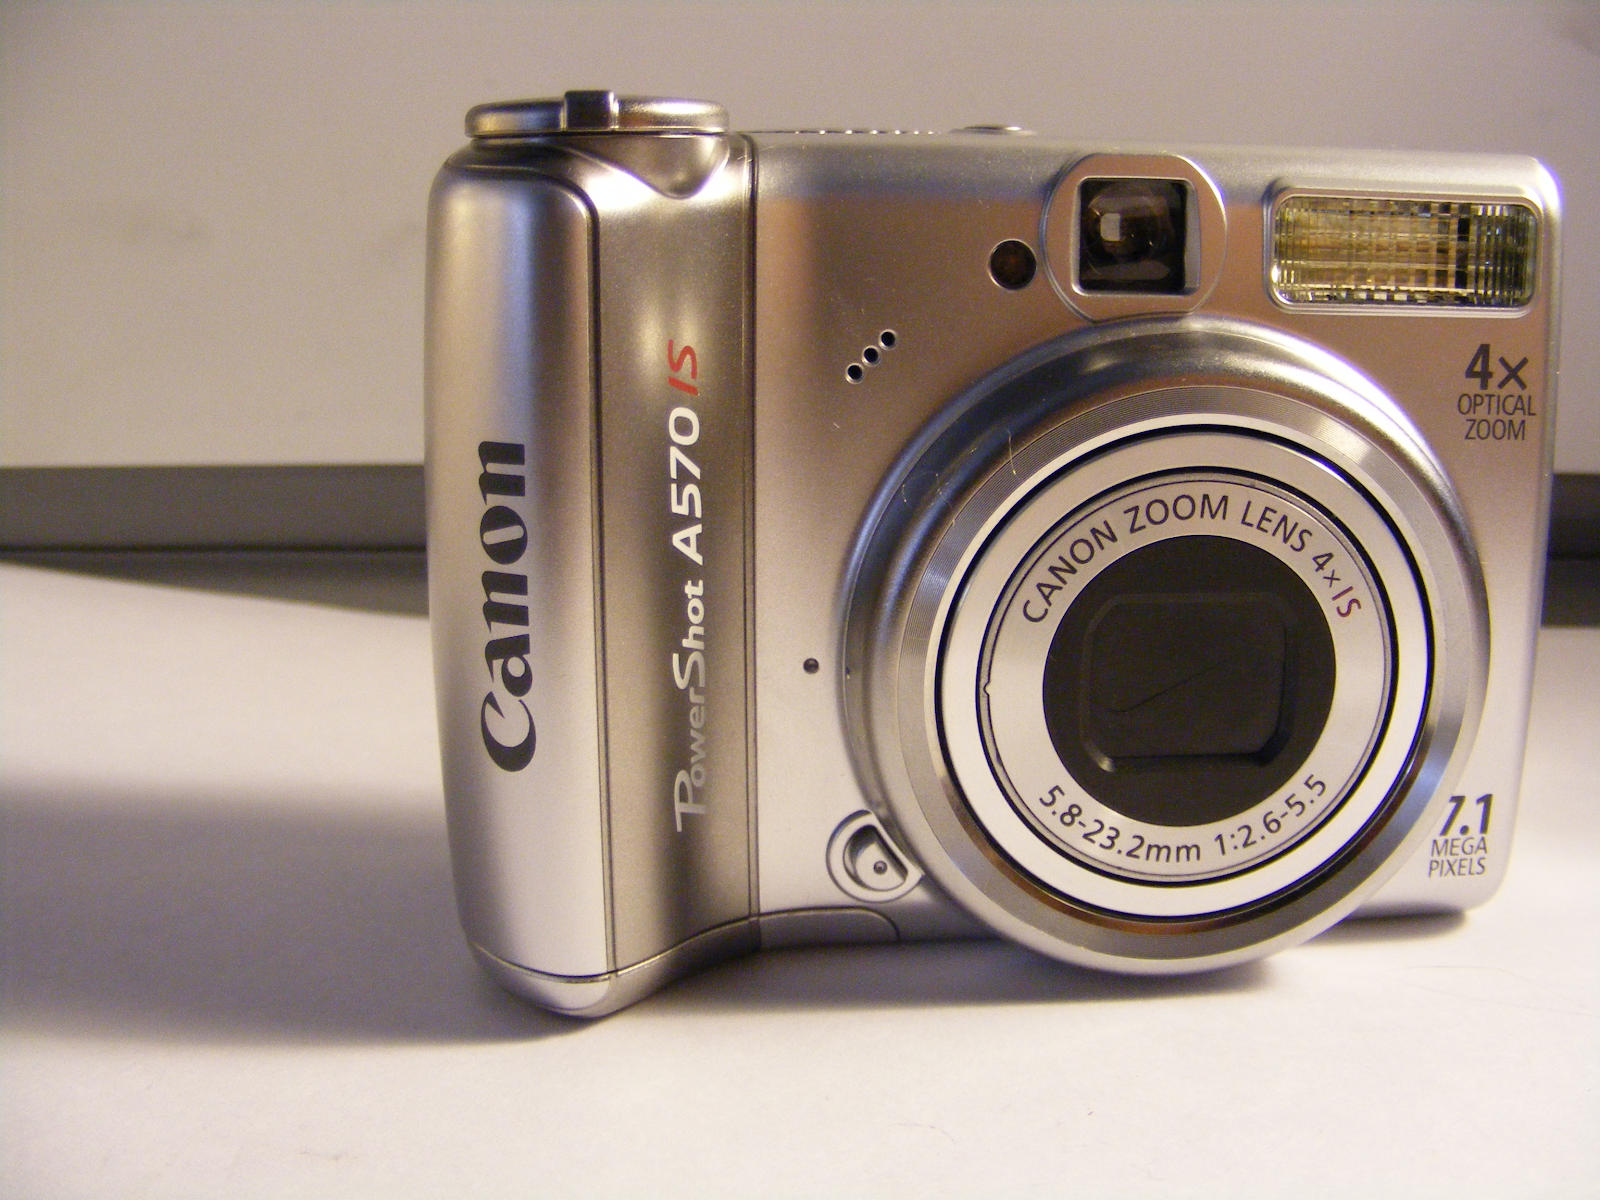 Canon A570 IS